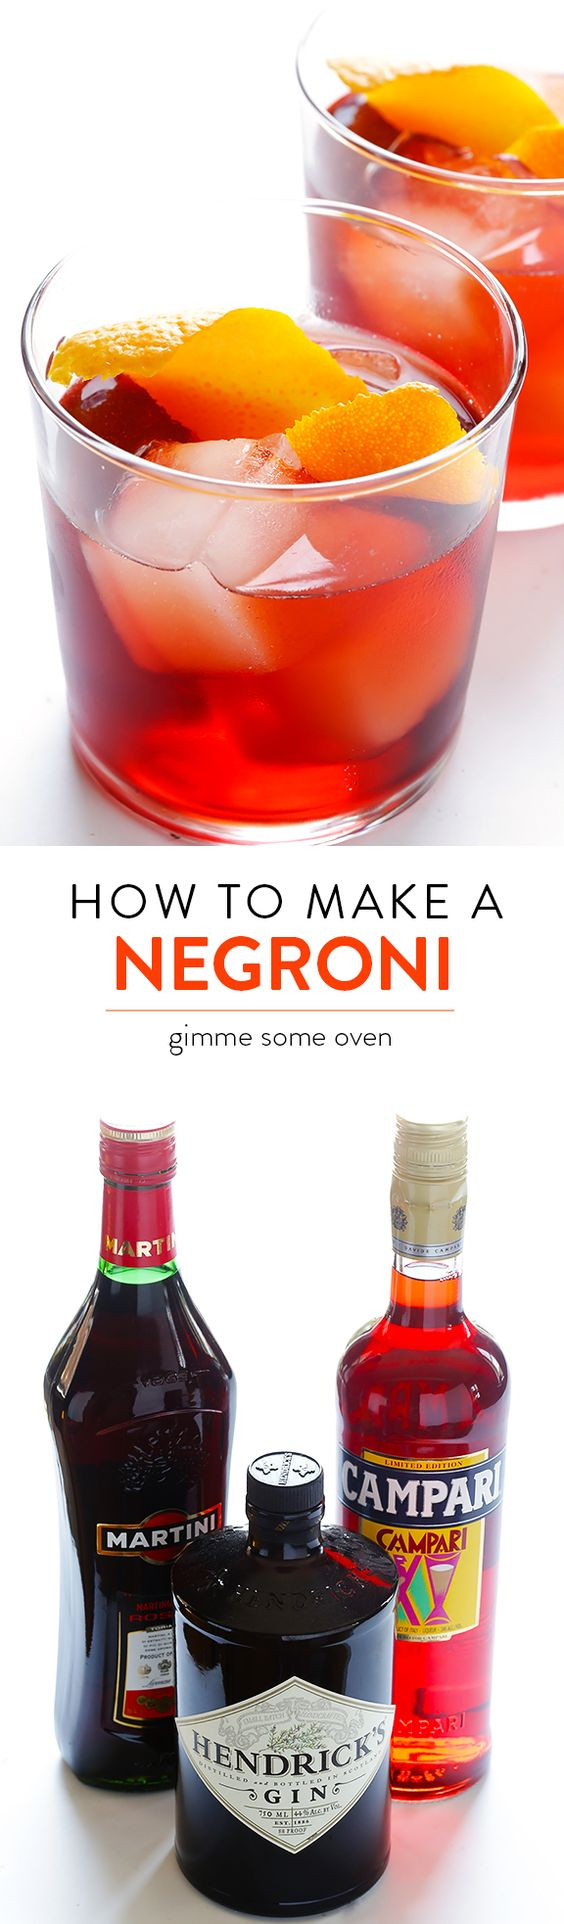 negroni cranberry negroni marco polo negroni east indian negroni ...